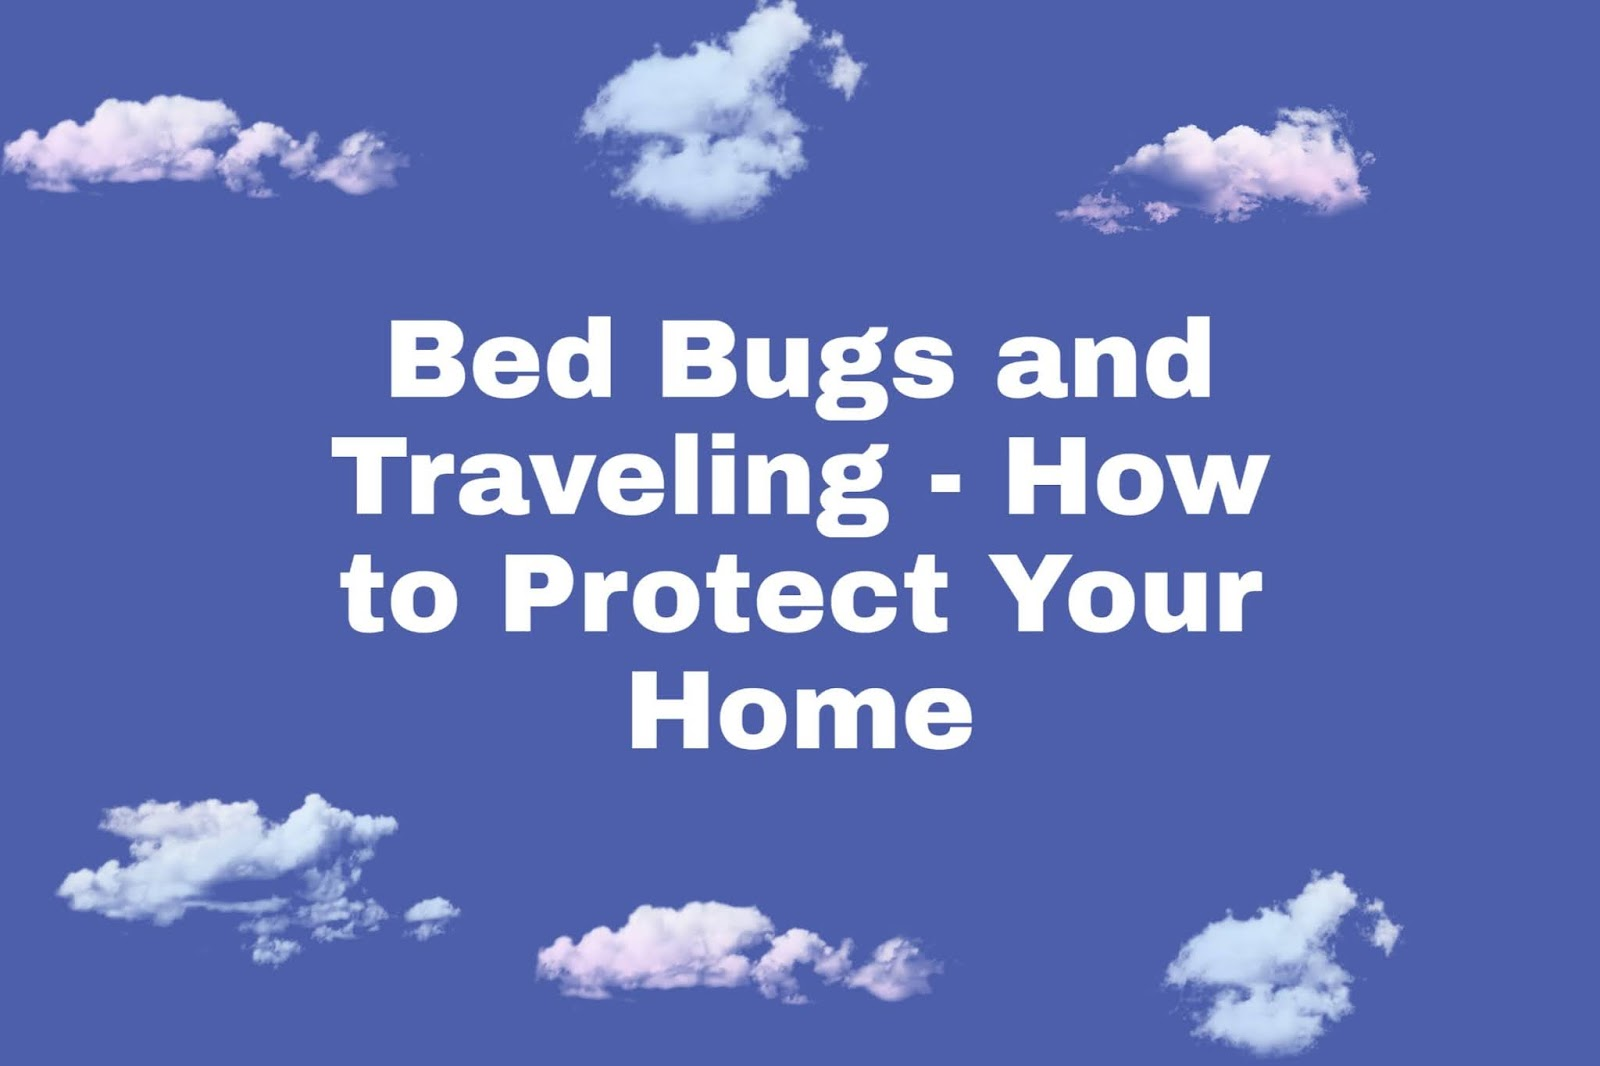 Bed Bugs and Traveling - How to Protect Your Home